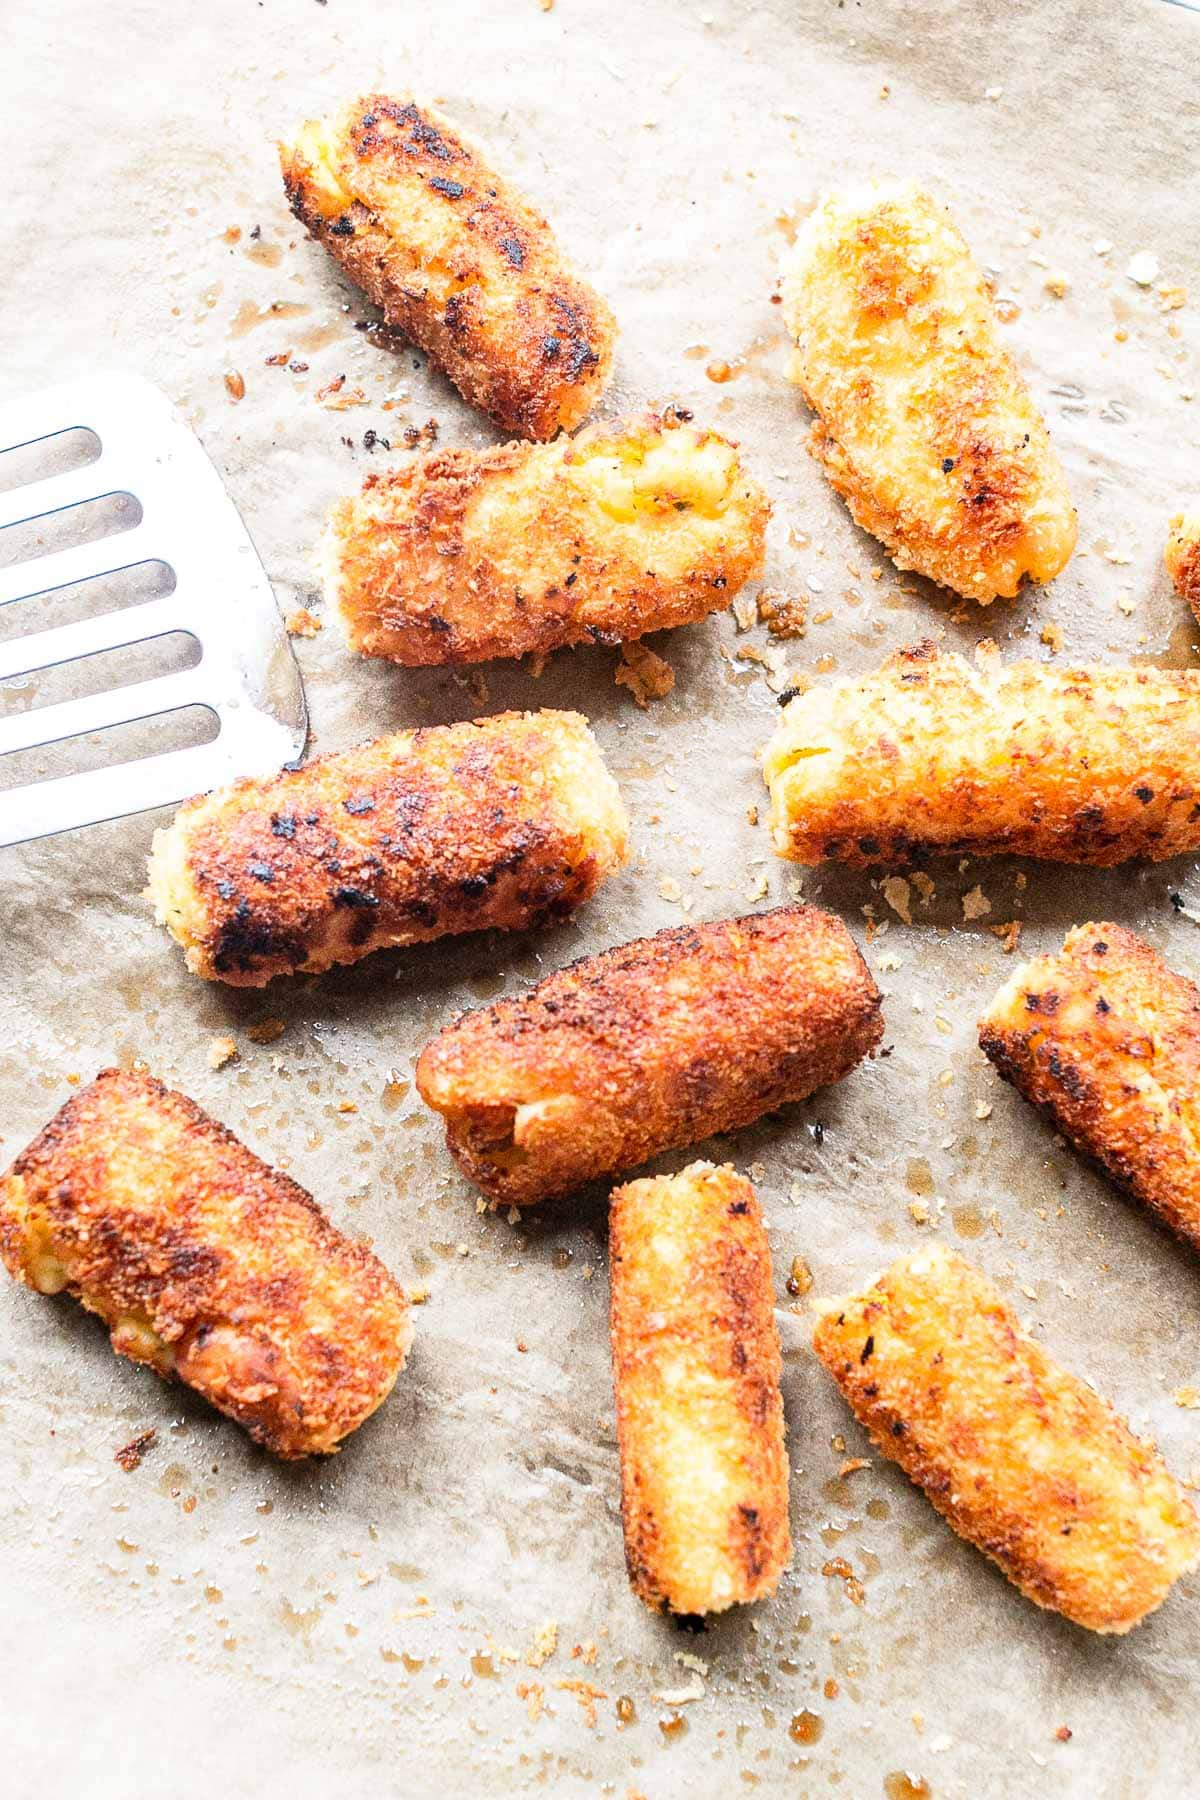 These potato croquettes are a classic side dish. The perfect combination of a crunchy outside and a soft inside! Bake in the oven or shallow fry in a skillet. Visit fastfoodbistro.com for the full recipe #fastfoodbistro #potatocroquettes #croquettes #croquetrecipe #potatocroquetterecipe #sidedish